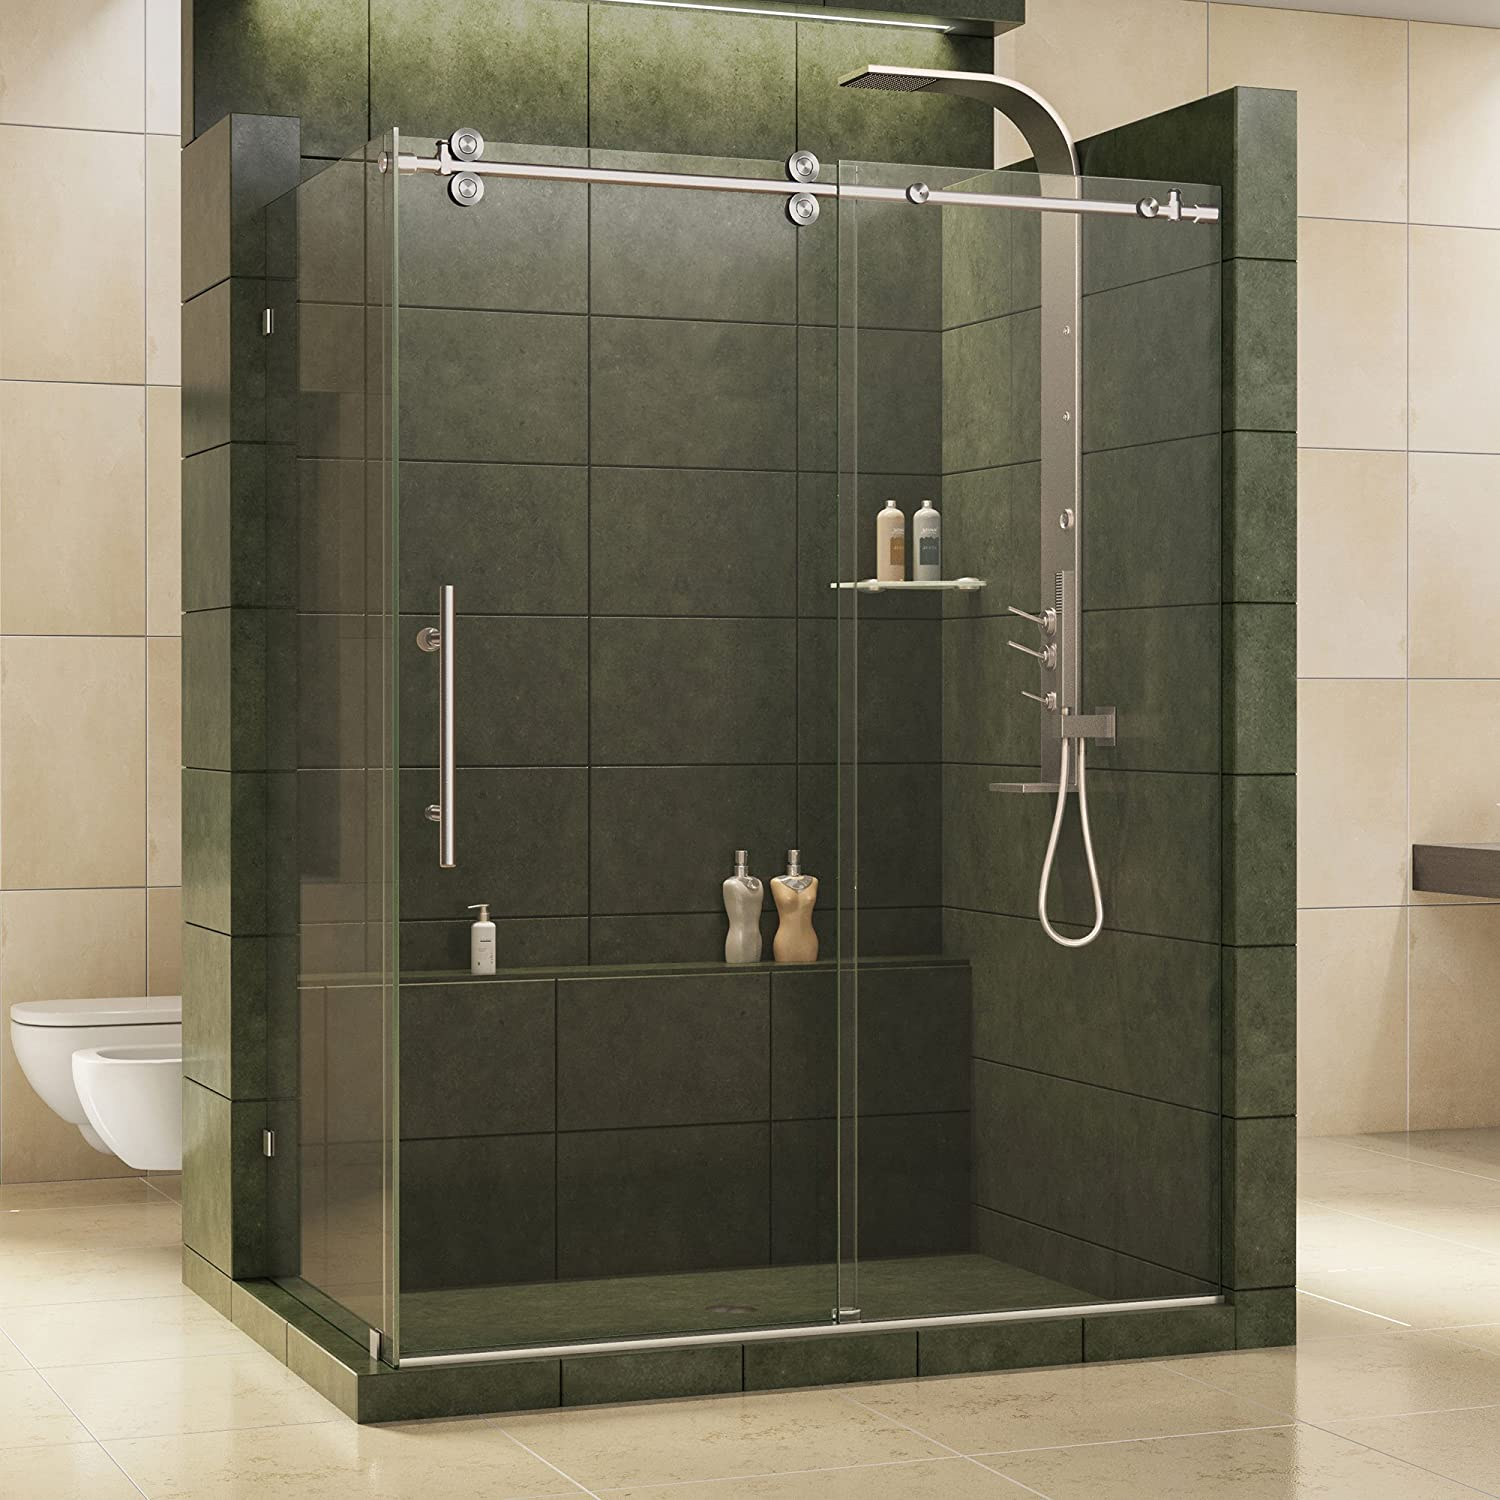 Amazon Canada] 36-Inch by 60 1/2-Inch Fully Frameless Sliding Shower ...